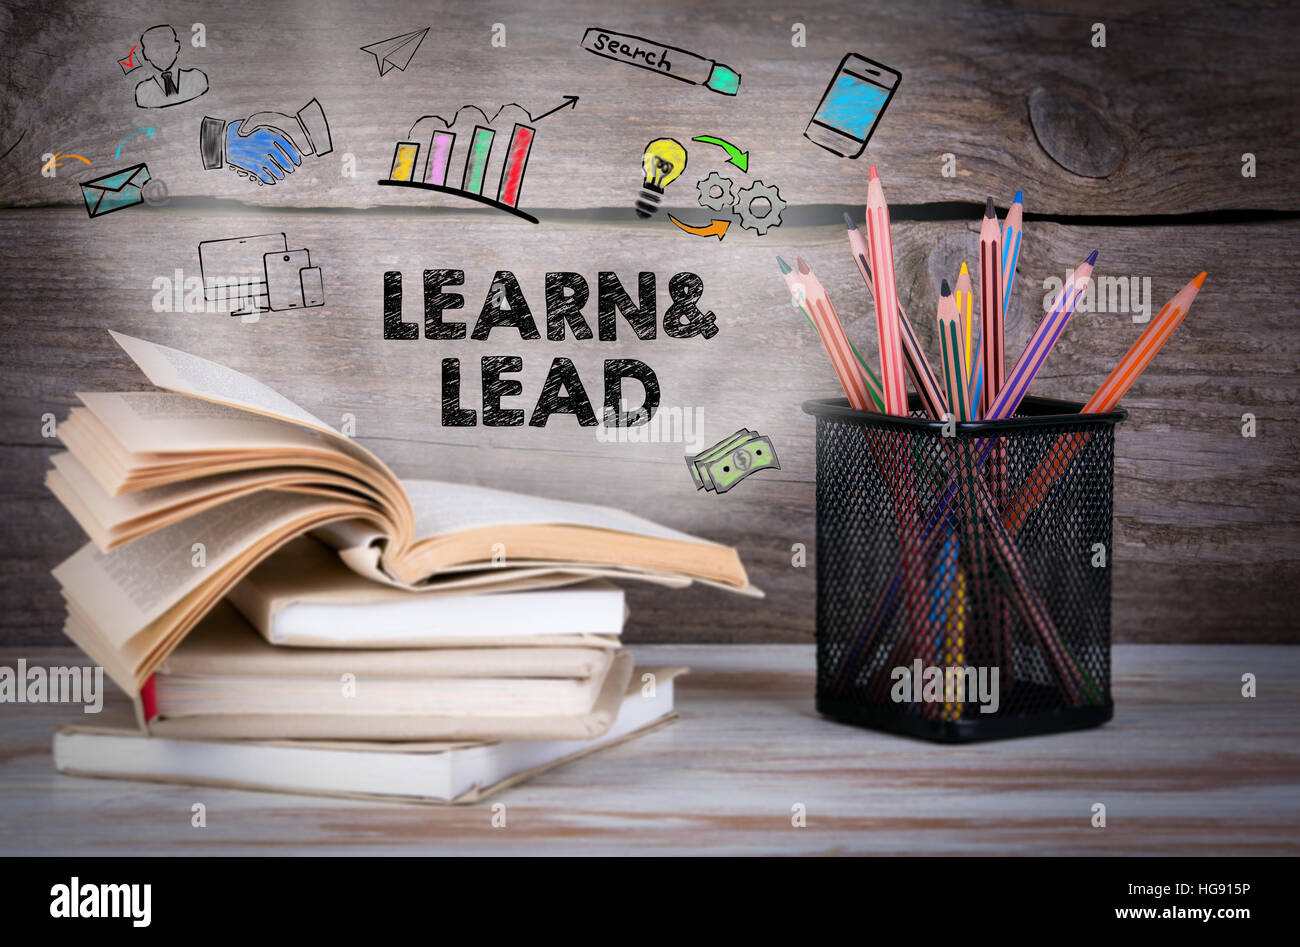 Learn and Lead. Stack of books and pencils on the wooden table. - Stock Image